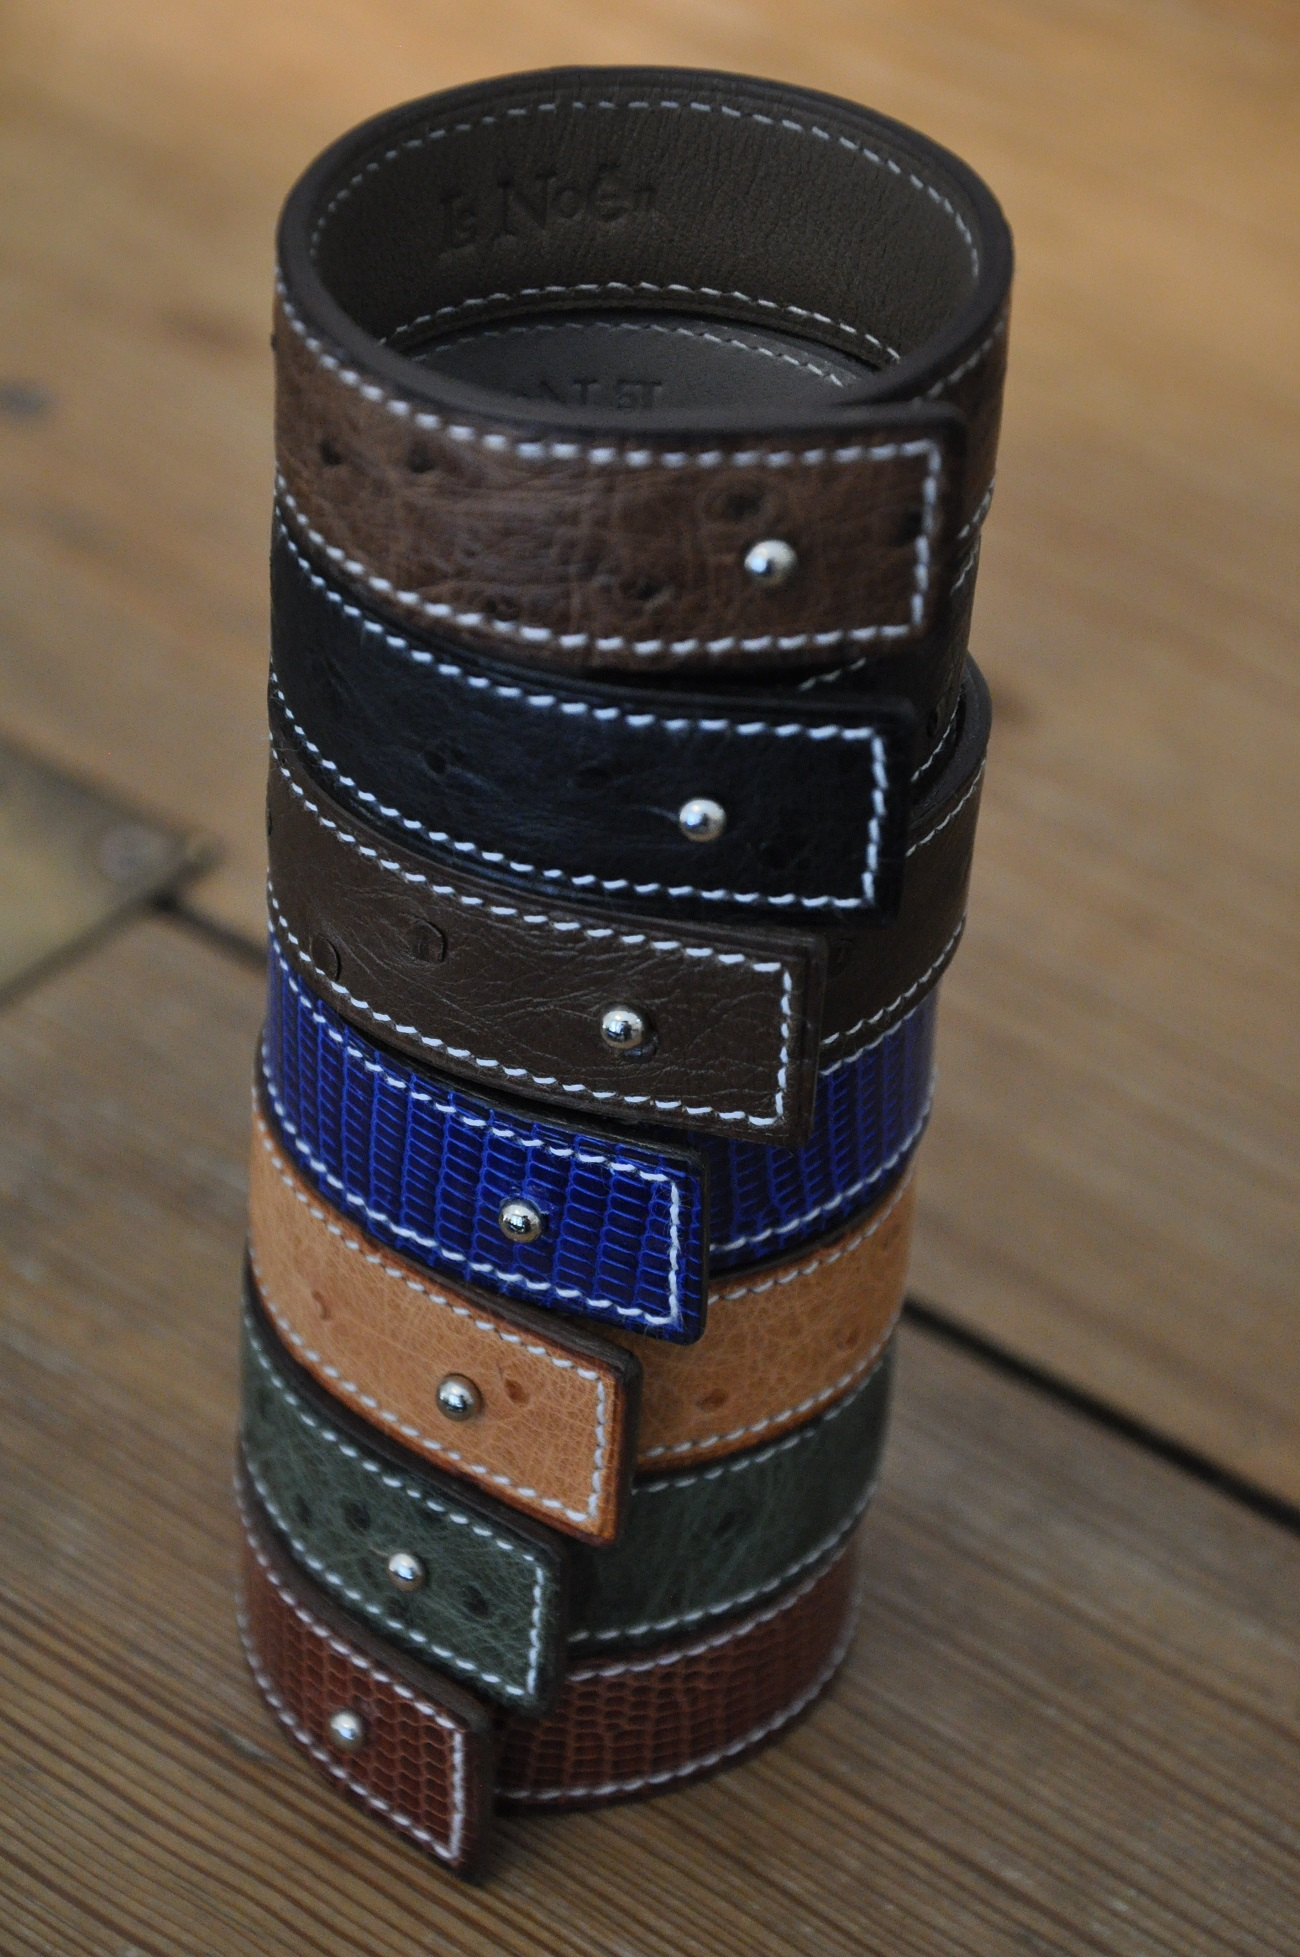 Bracelets jewelry made with precious leathers : ostrich, lizard, alliagtor... Fashion accessories by LE NOËN leather goods in France.